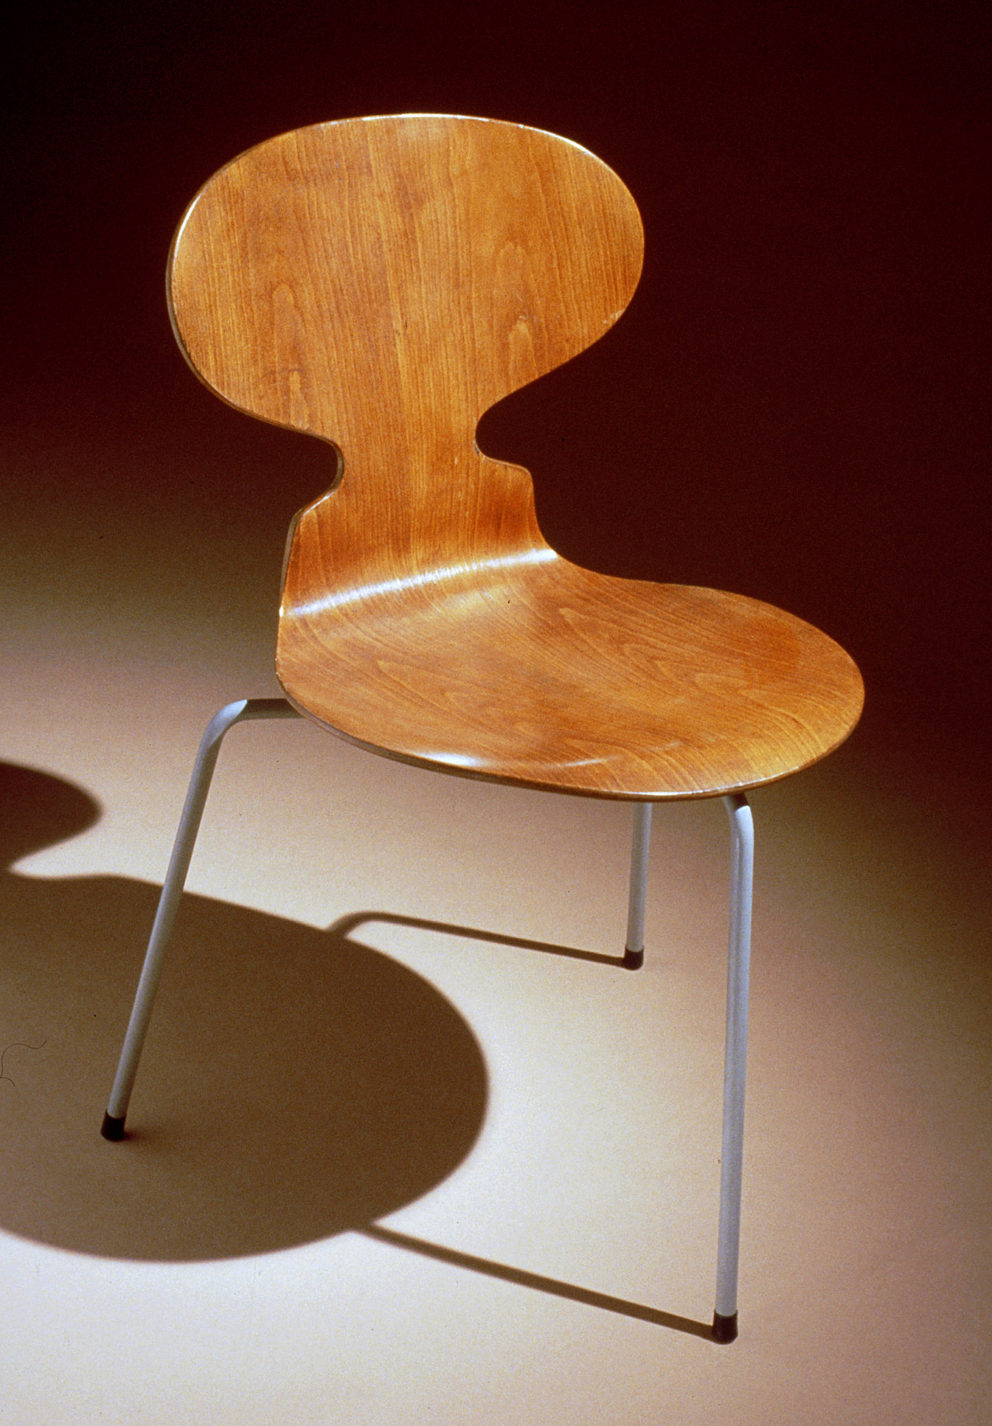 Chair with a single piece of plywood bent to form the oval back and round seat supported by three steel tubular legs.